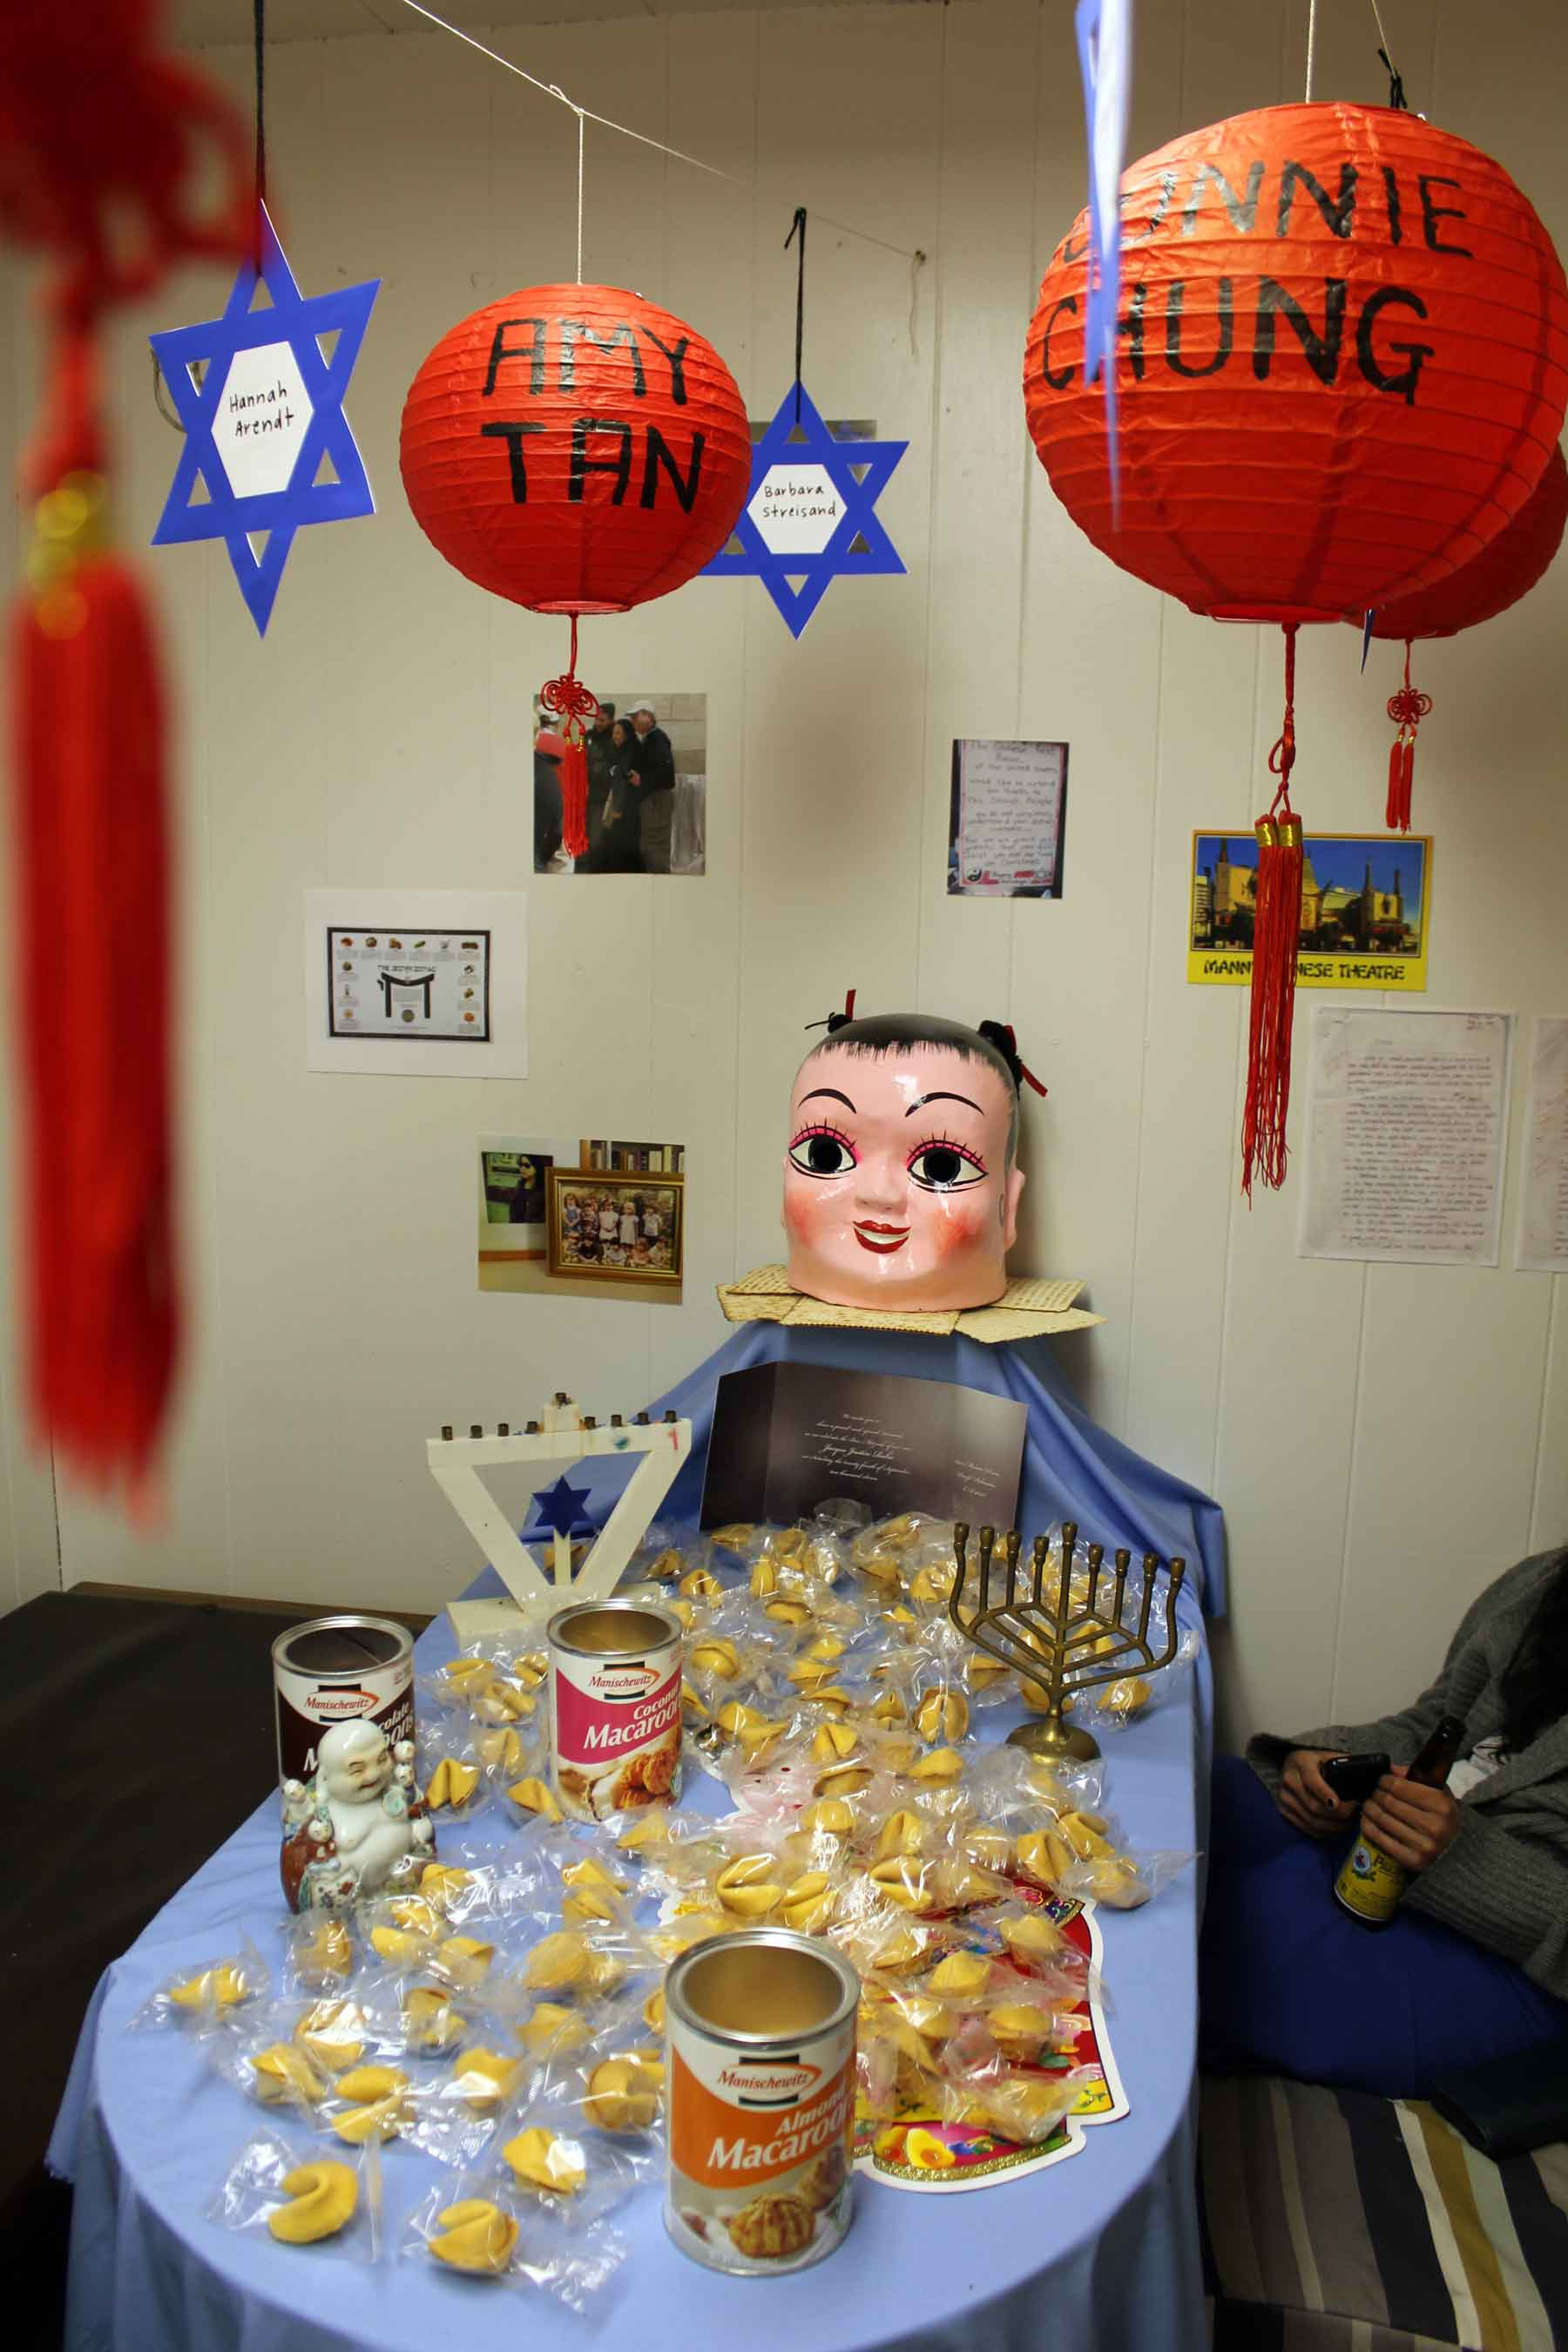 Chan & Mann, Asian-Jew Tablescape, installation of Asian-Jew misfortune cookies, decorations from Chinatown, menorahs, Buddha, incense, inkjet prints of images from the Internet and personal photographs, found Bar Mitzvah announcement, painted paper lanterns, Jewish stars of fame, 2012. Photo: Audrey Chan.